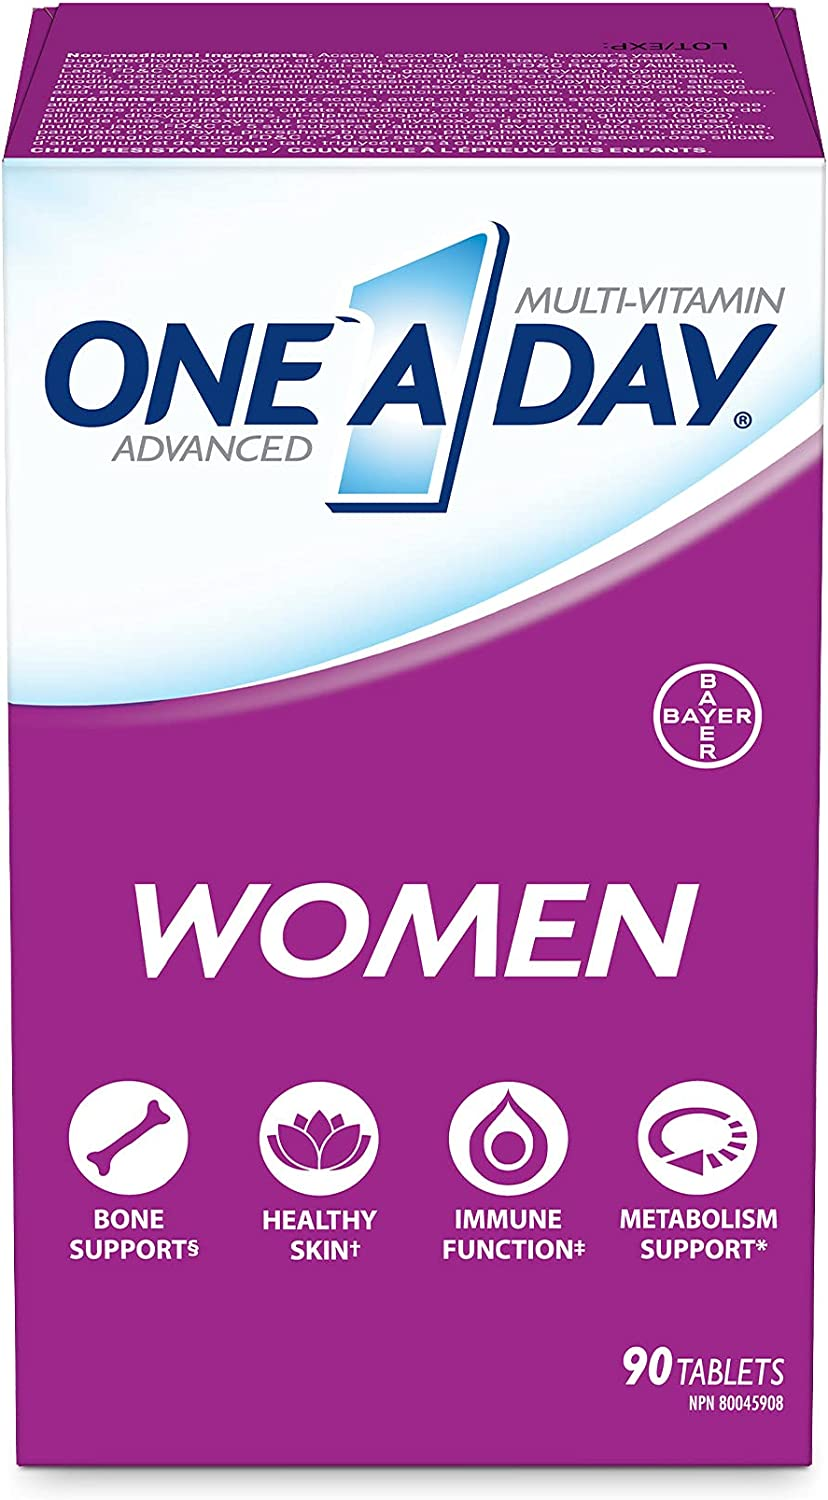 One A Day Advanced Multivitamin Super-cheap Max 71% OFF tablets women 90 for